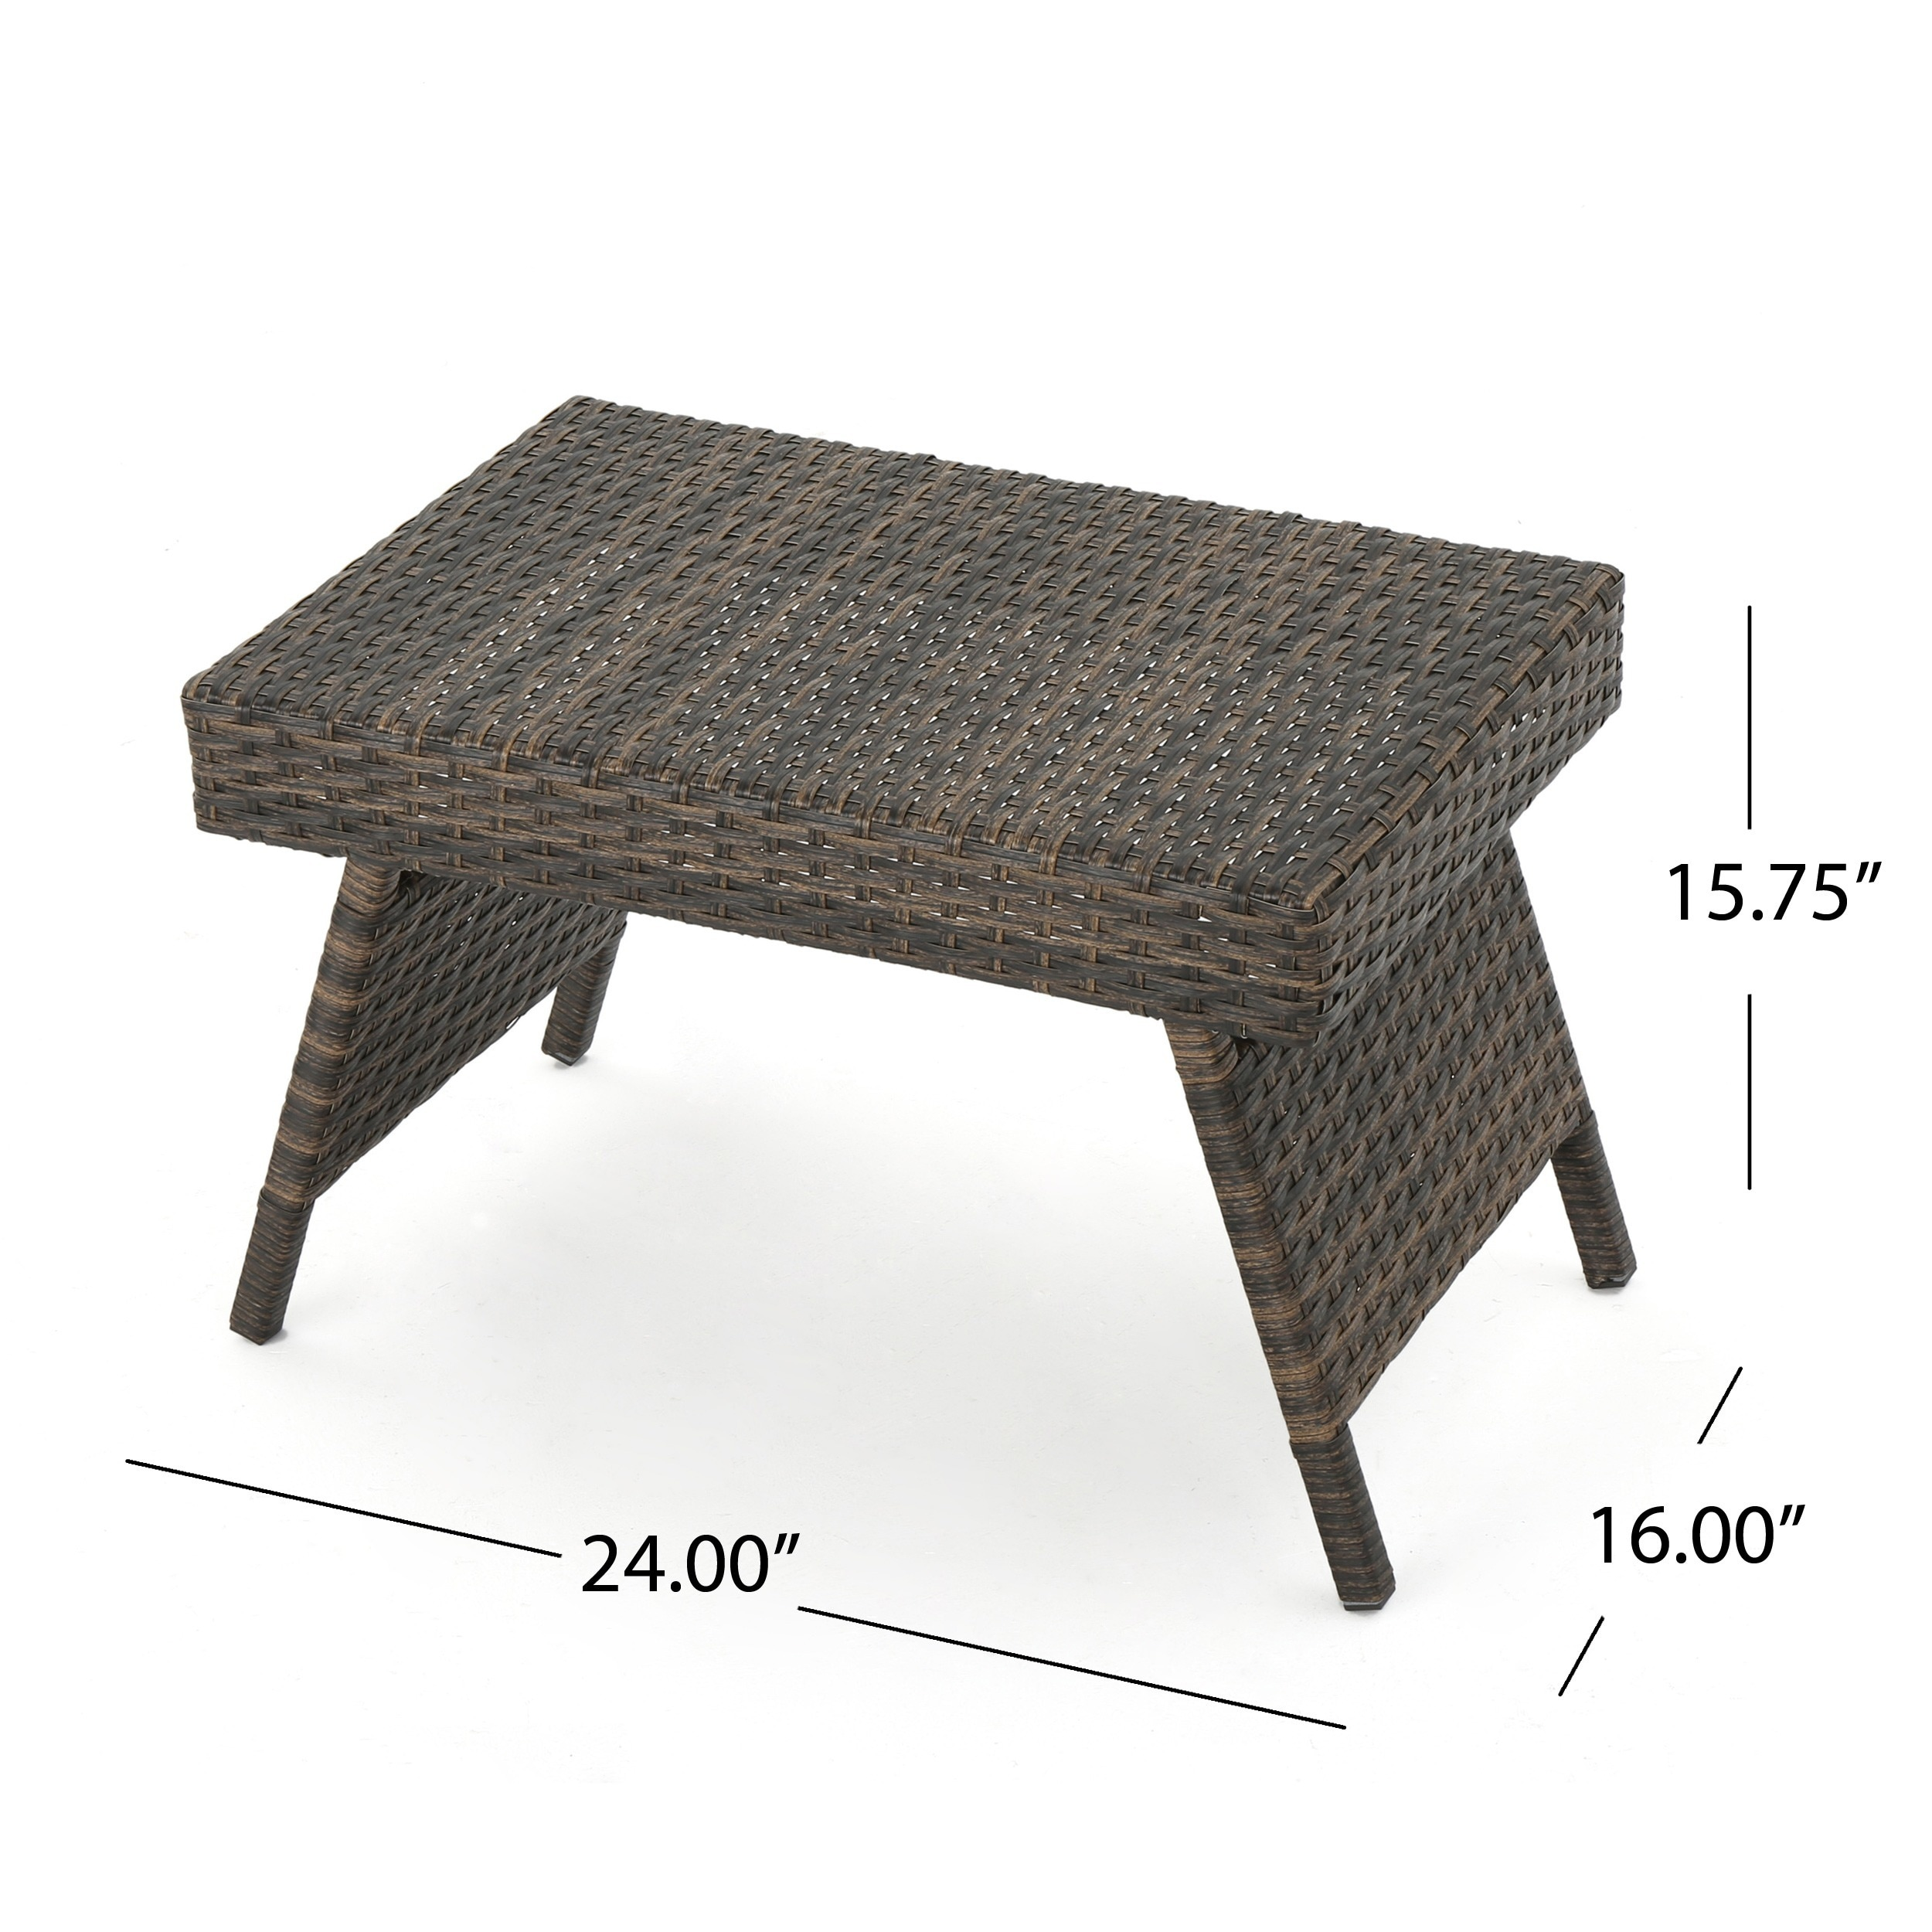 Christopher Knight Home Outdoor Brown Wicker 3-piece Adjustable ...